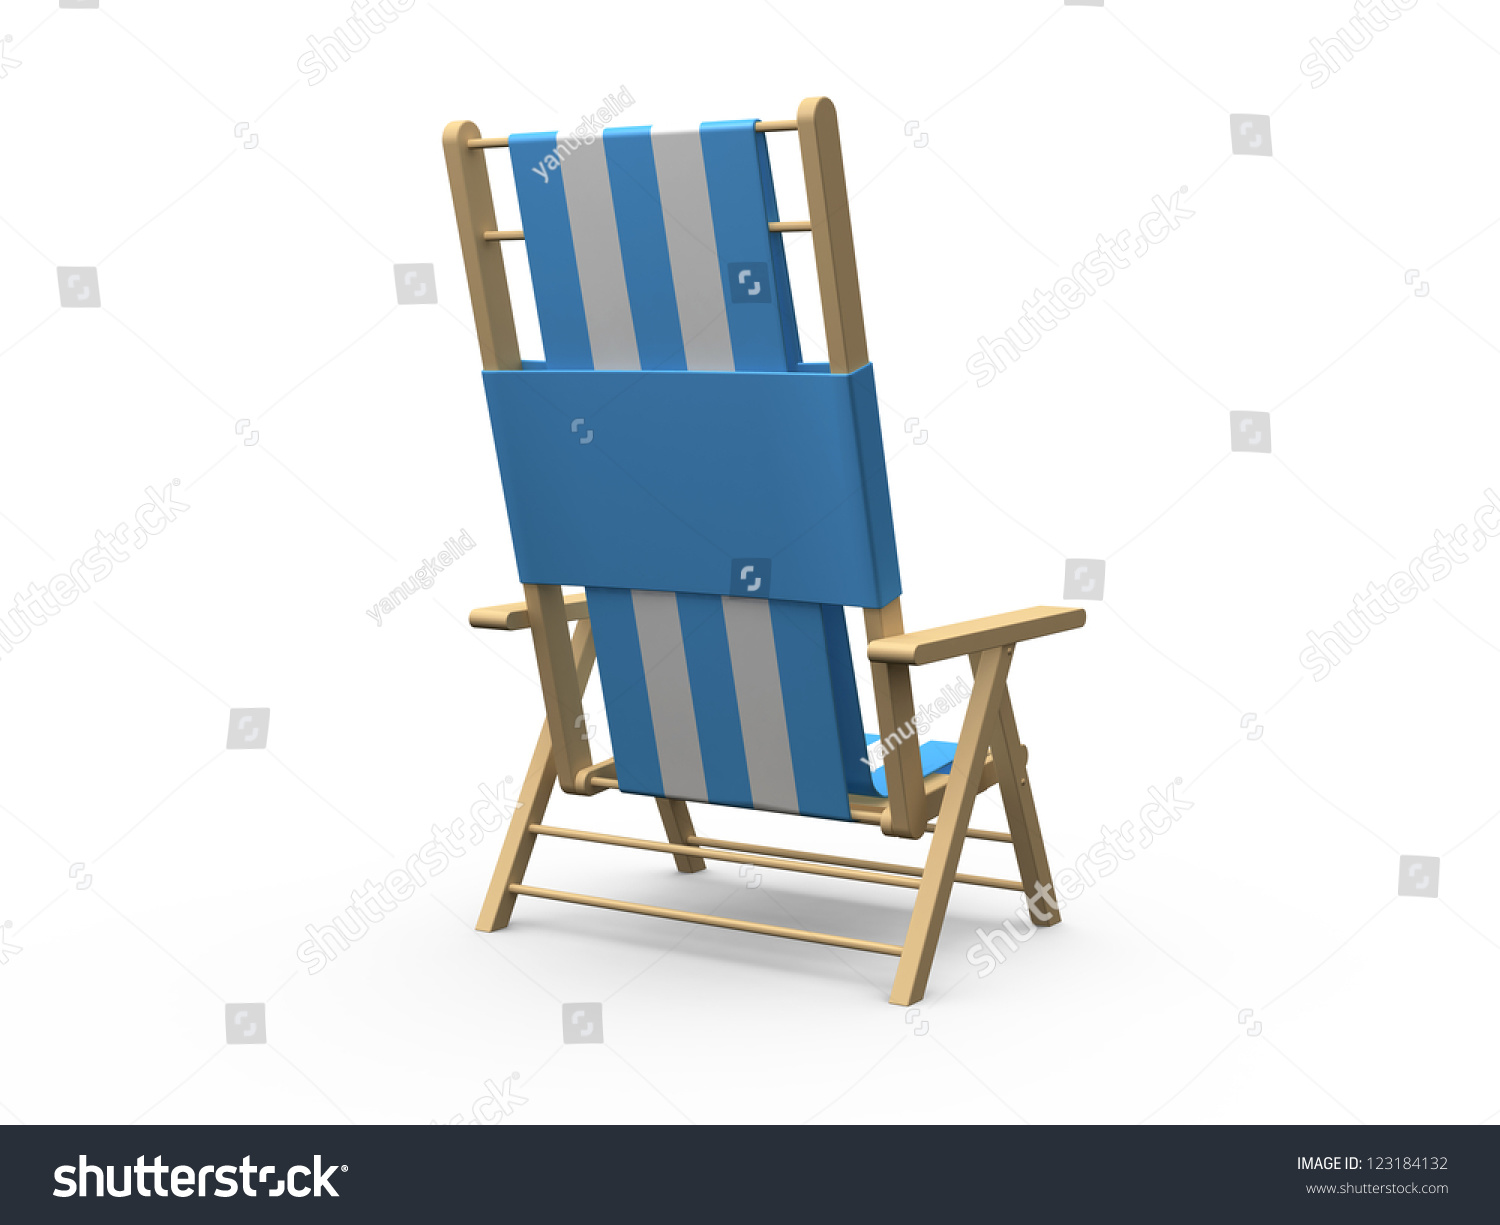 Beach chair back - Blue And White Wooden Beach Chair Back View Isolated On White Background